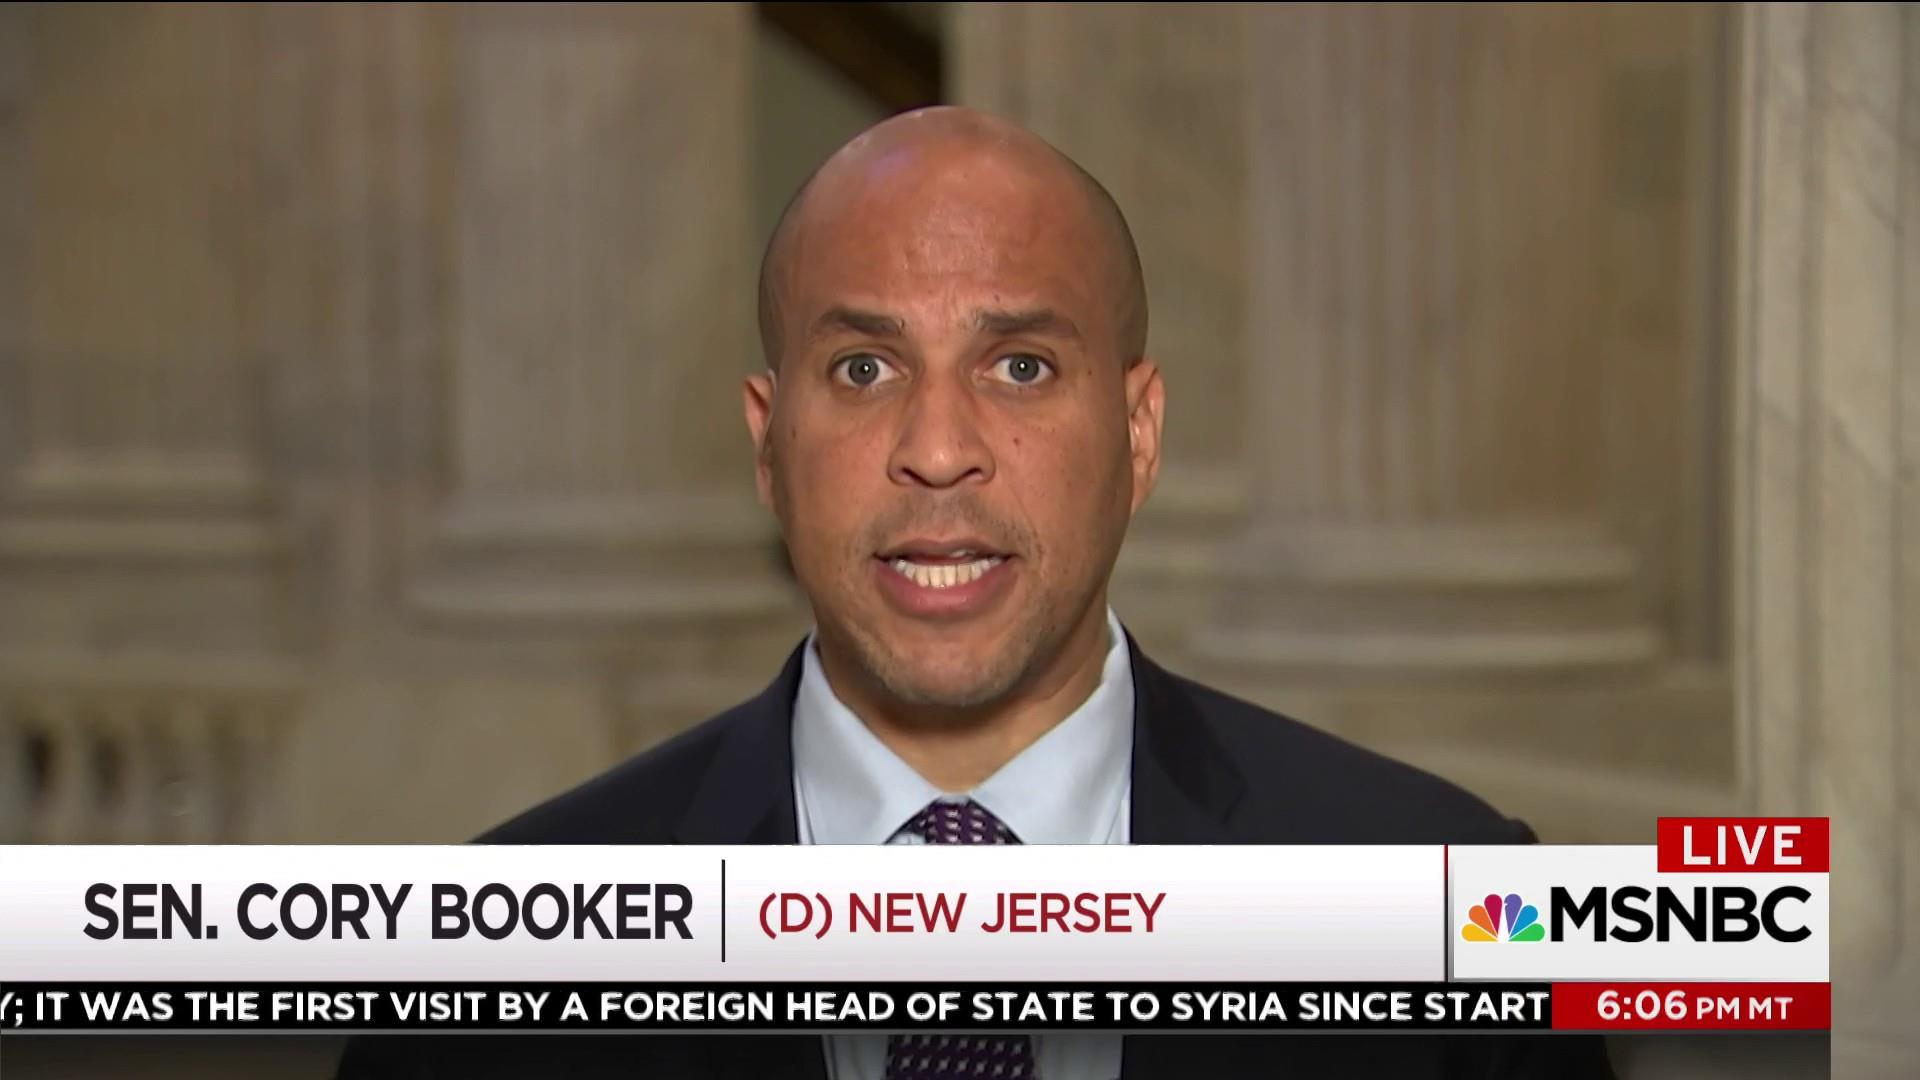 Cory Booker: Roy Moore won't be accepted in the Senate